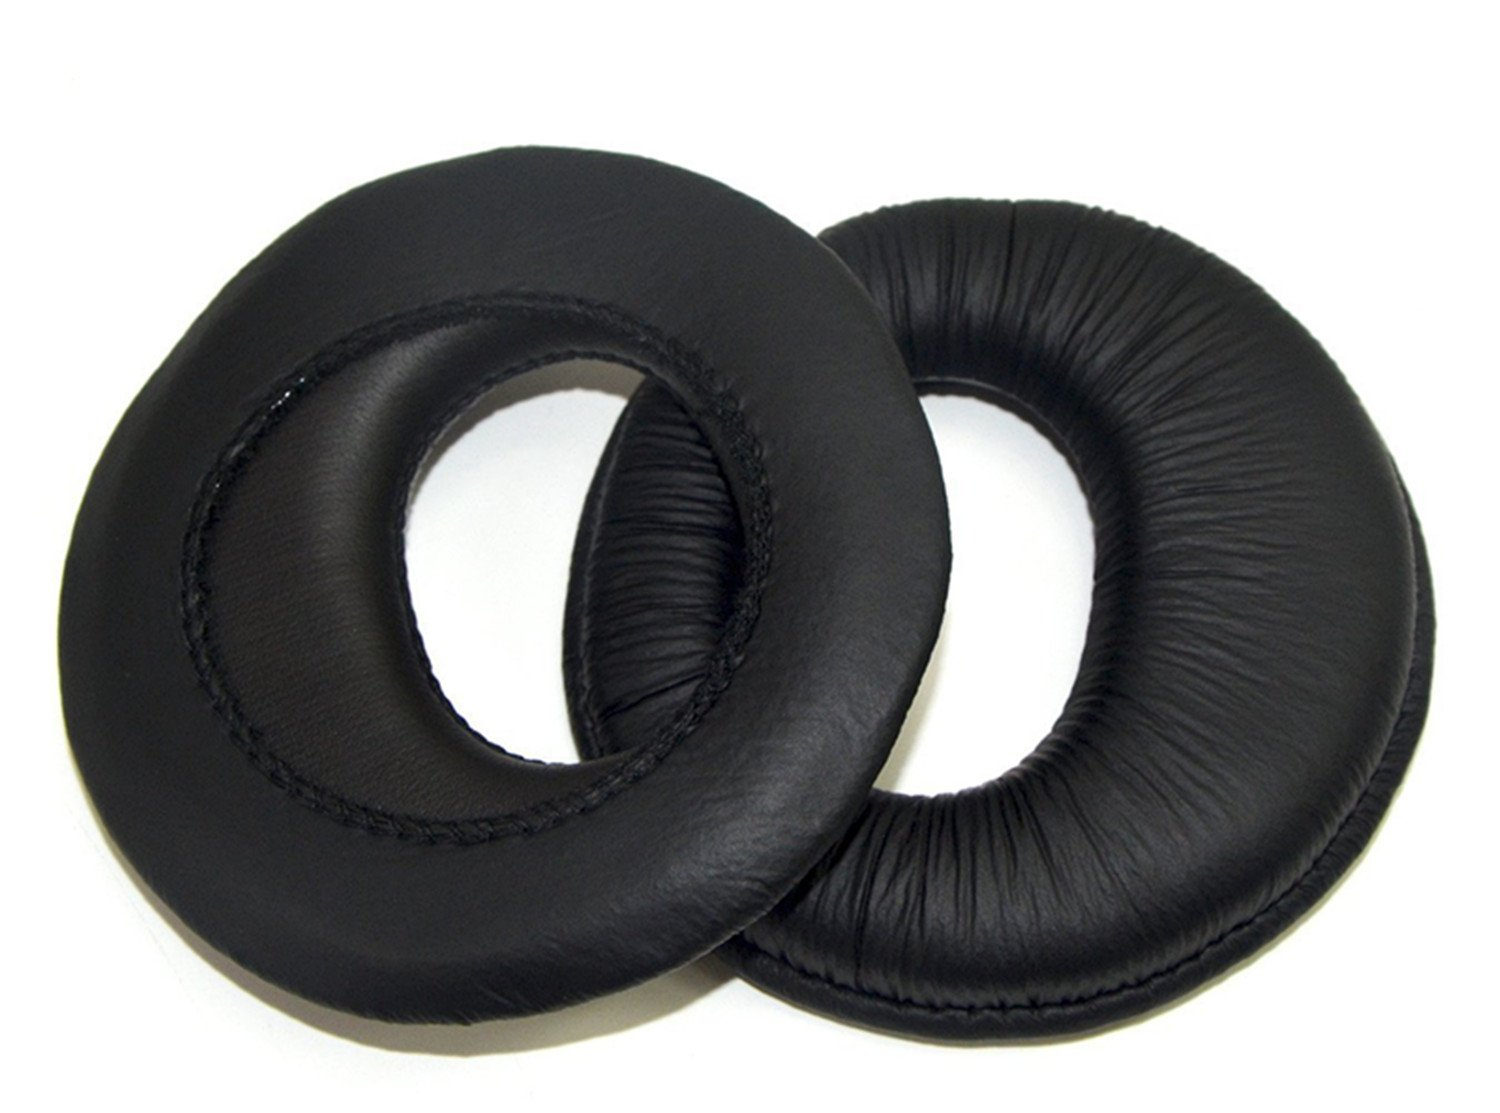 YunYiYi Black Replacement Foam Earpads Pillow Ear Pads Cushions Cover Cups Repair Parts for Sony MDR-RF925RK MDR-RF970RK RF985R Headphones